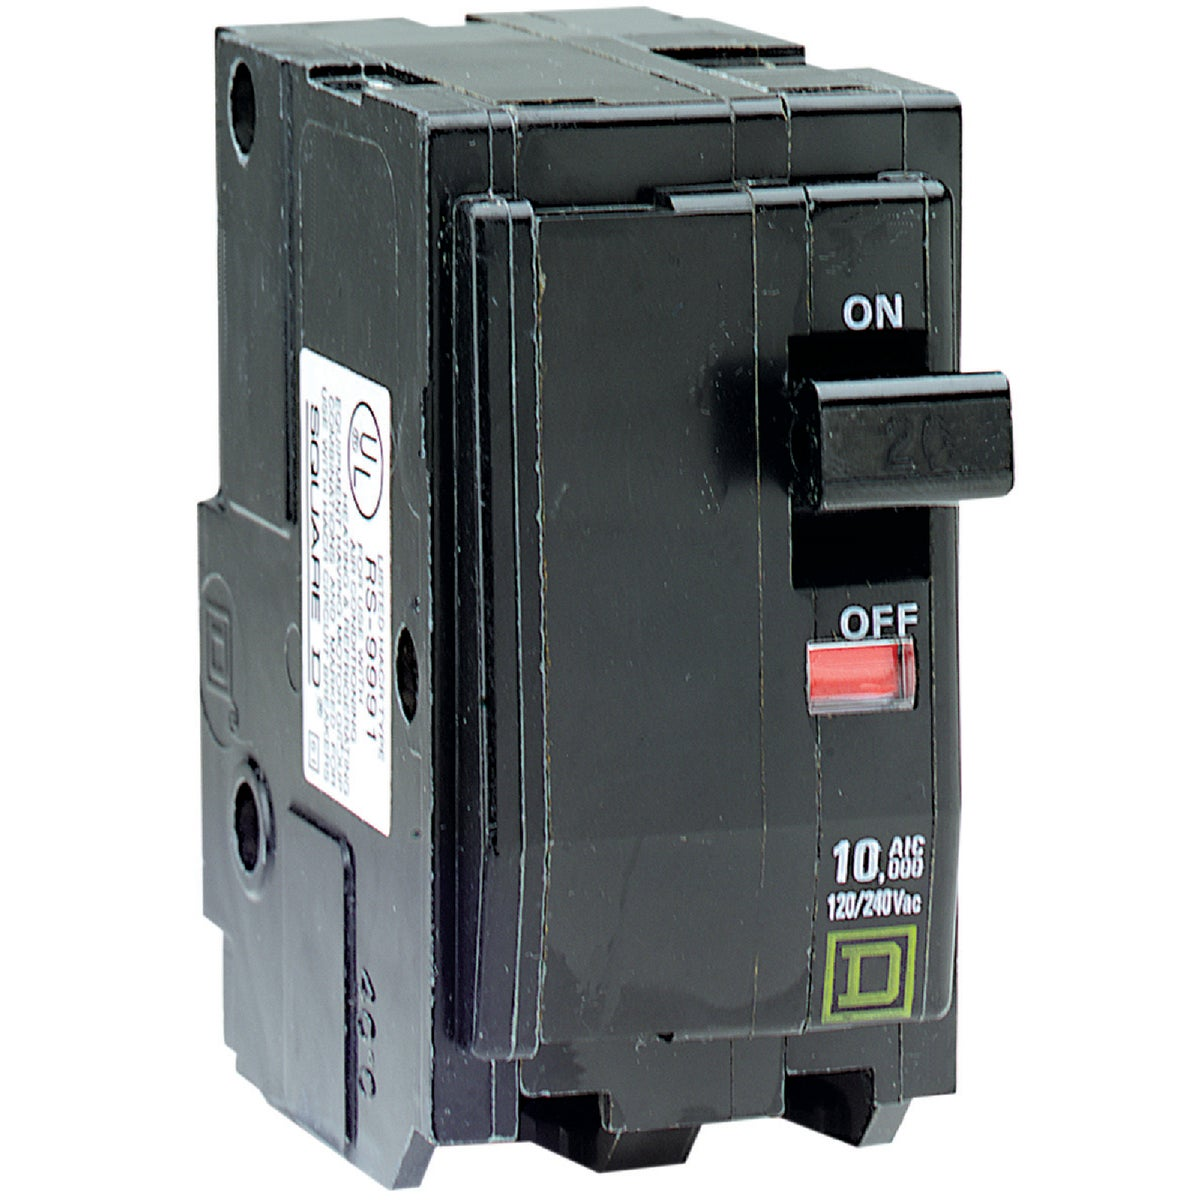 20A 2P CIRCUIT BREAKER - QO220CP by Square D Co